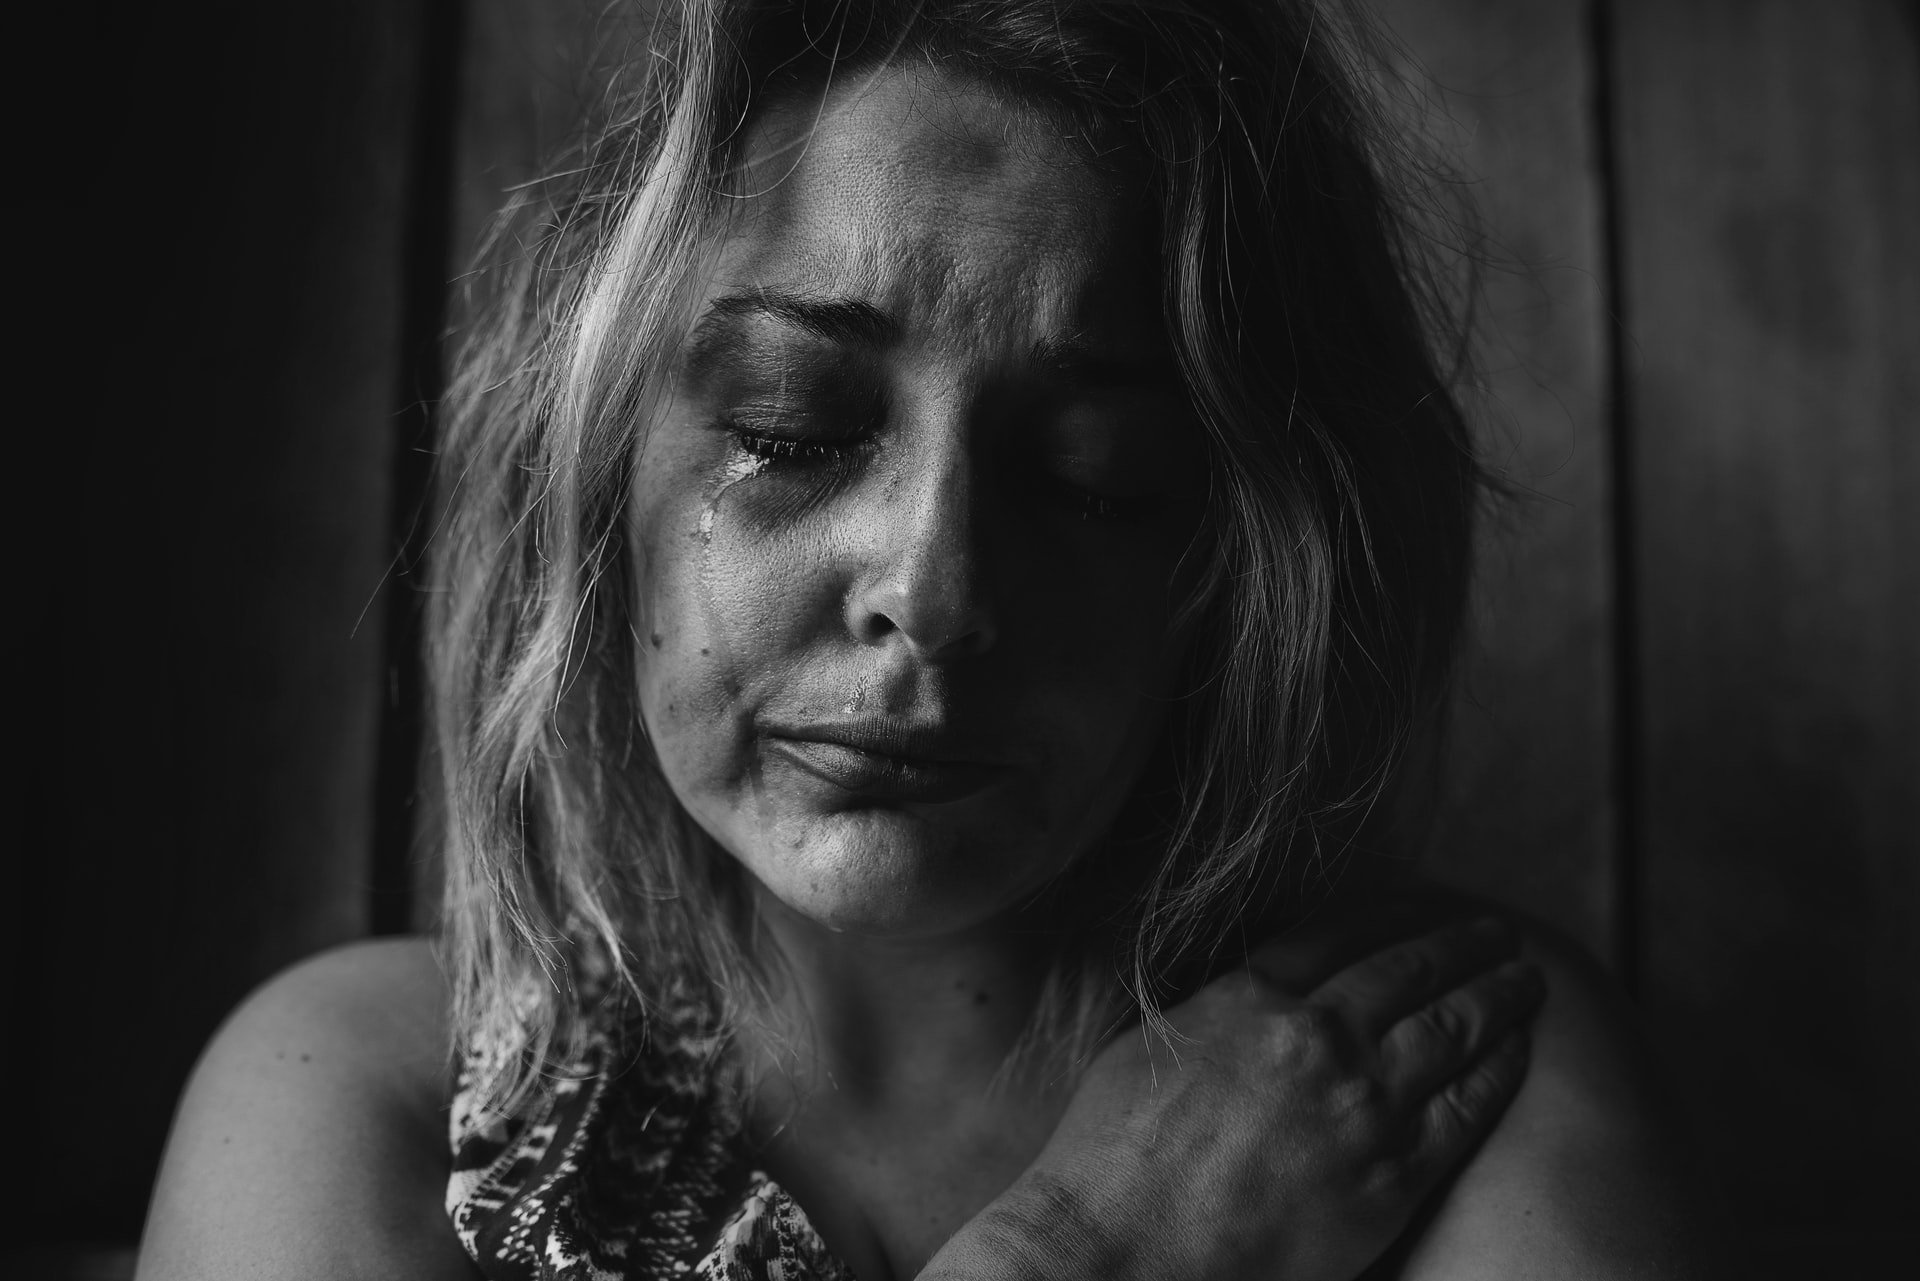 Close-up of a woman crying | Source: Unsplash